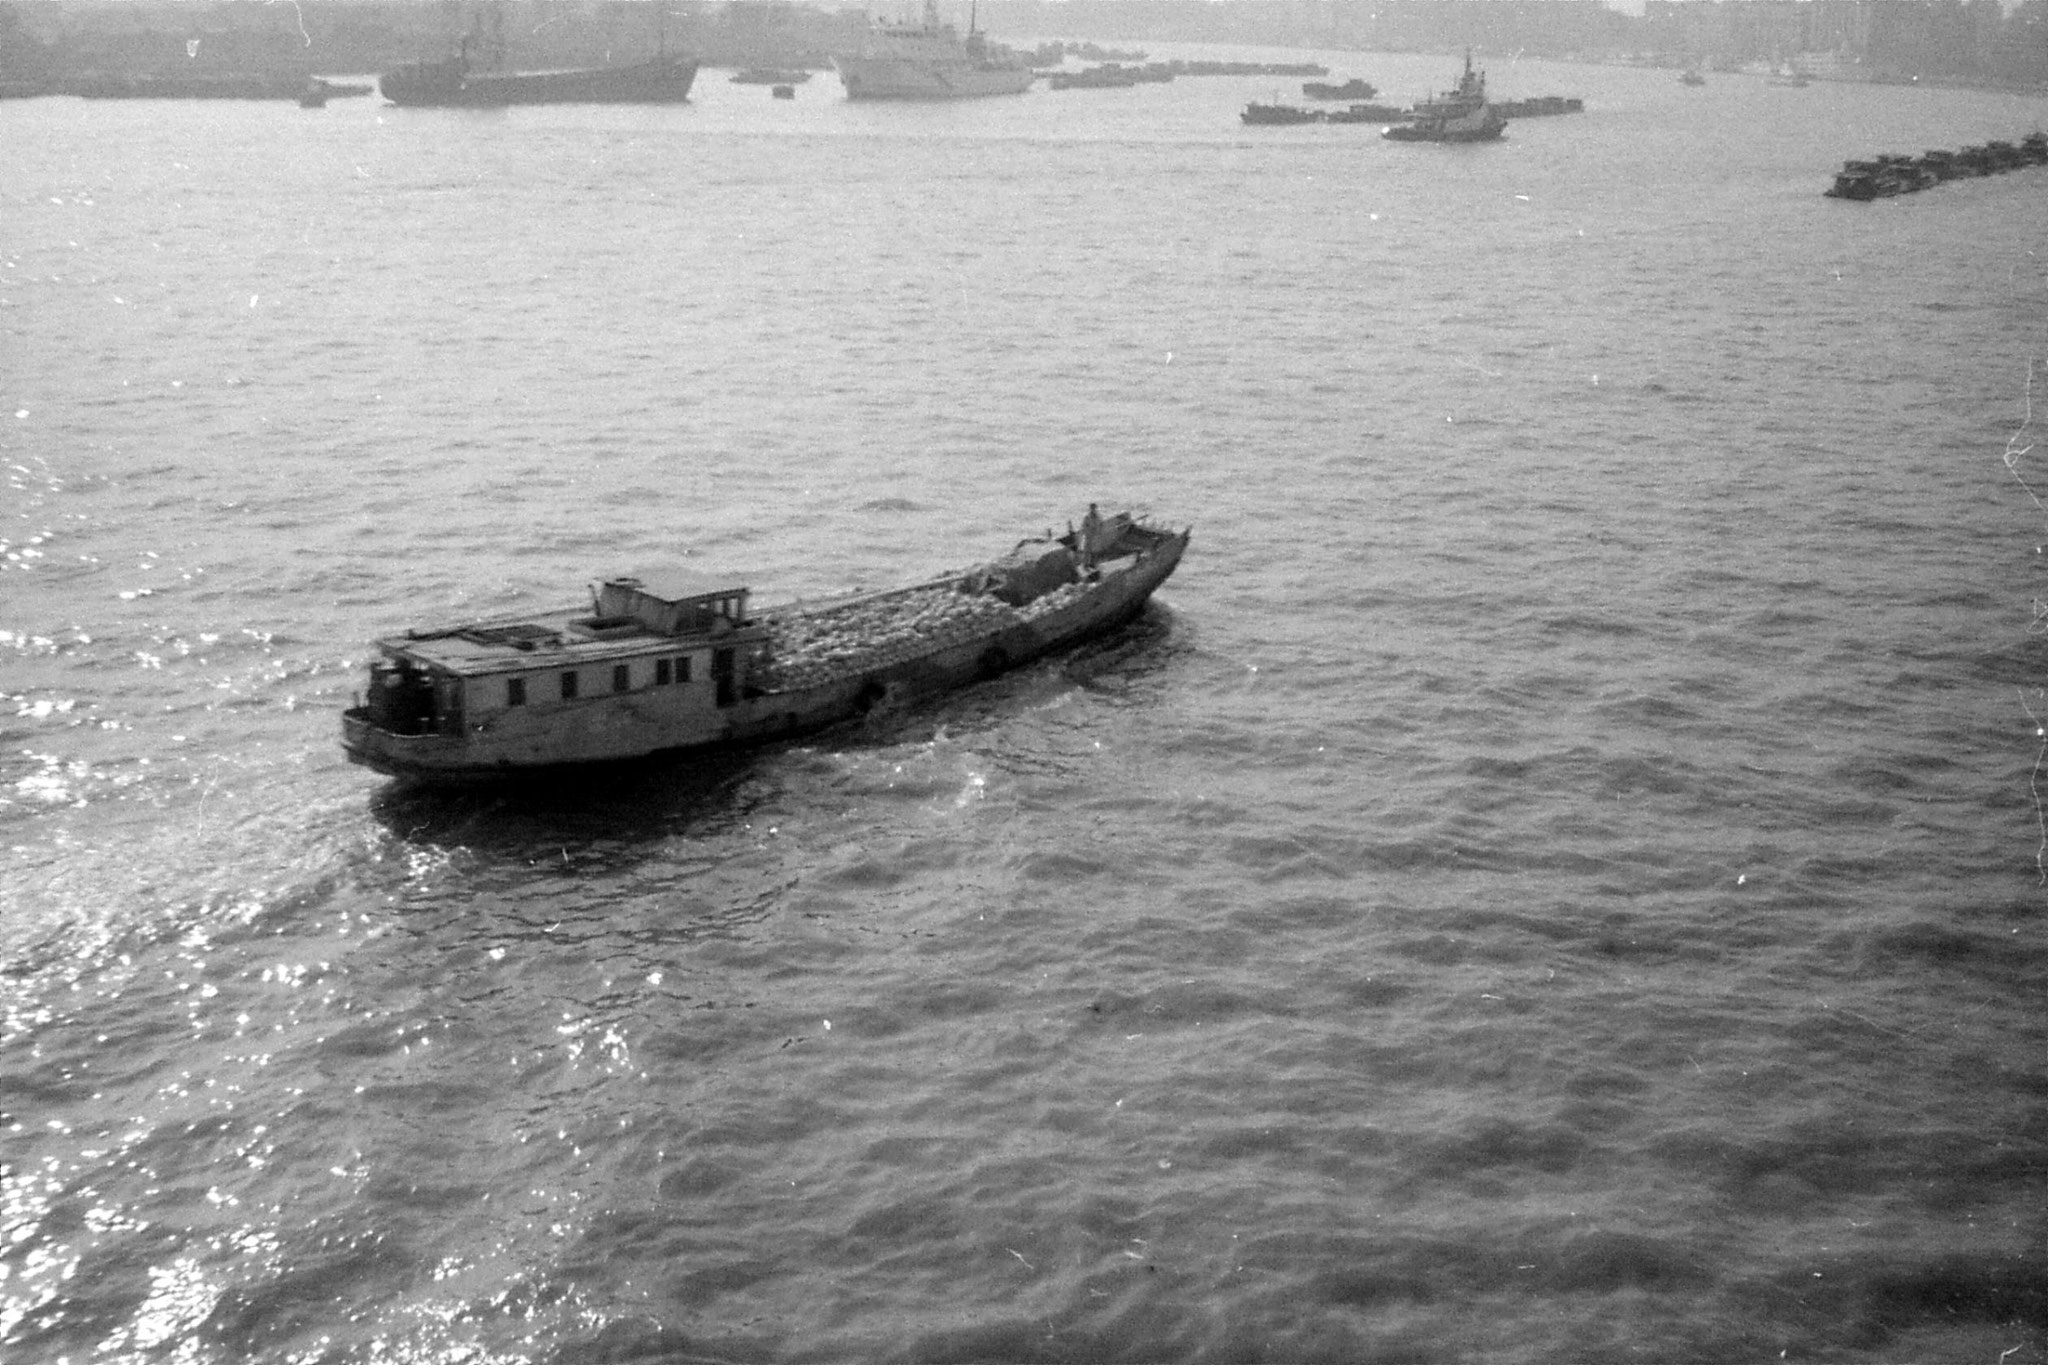 17/12/1988: 29: Shanghai from ship to Japan